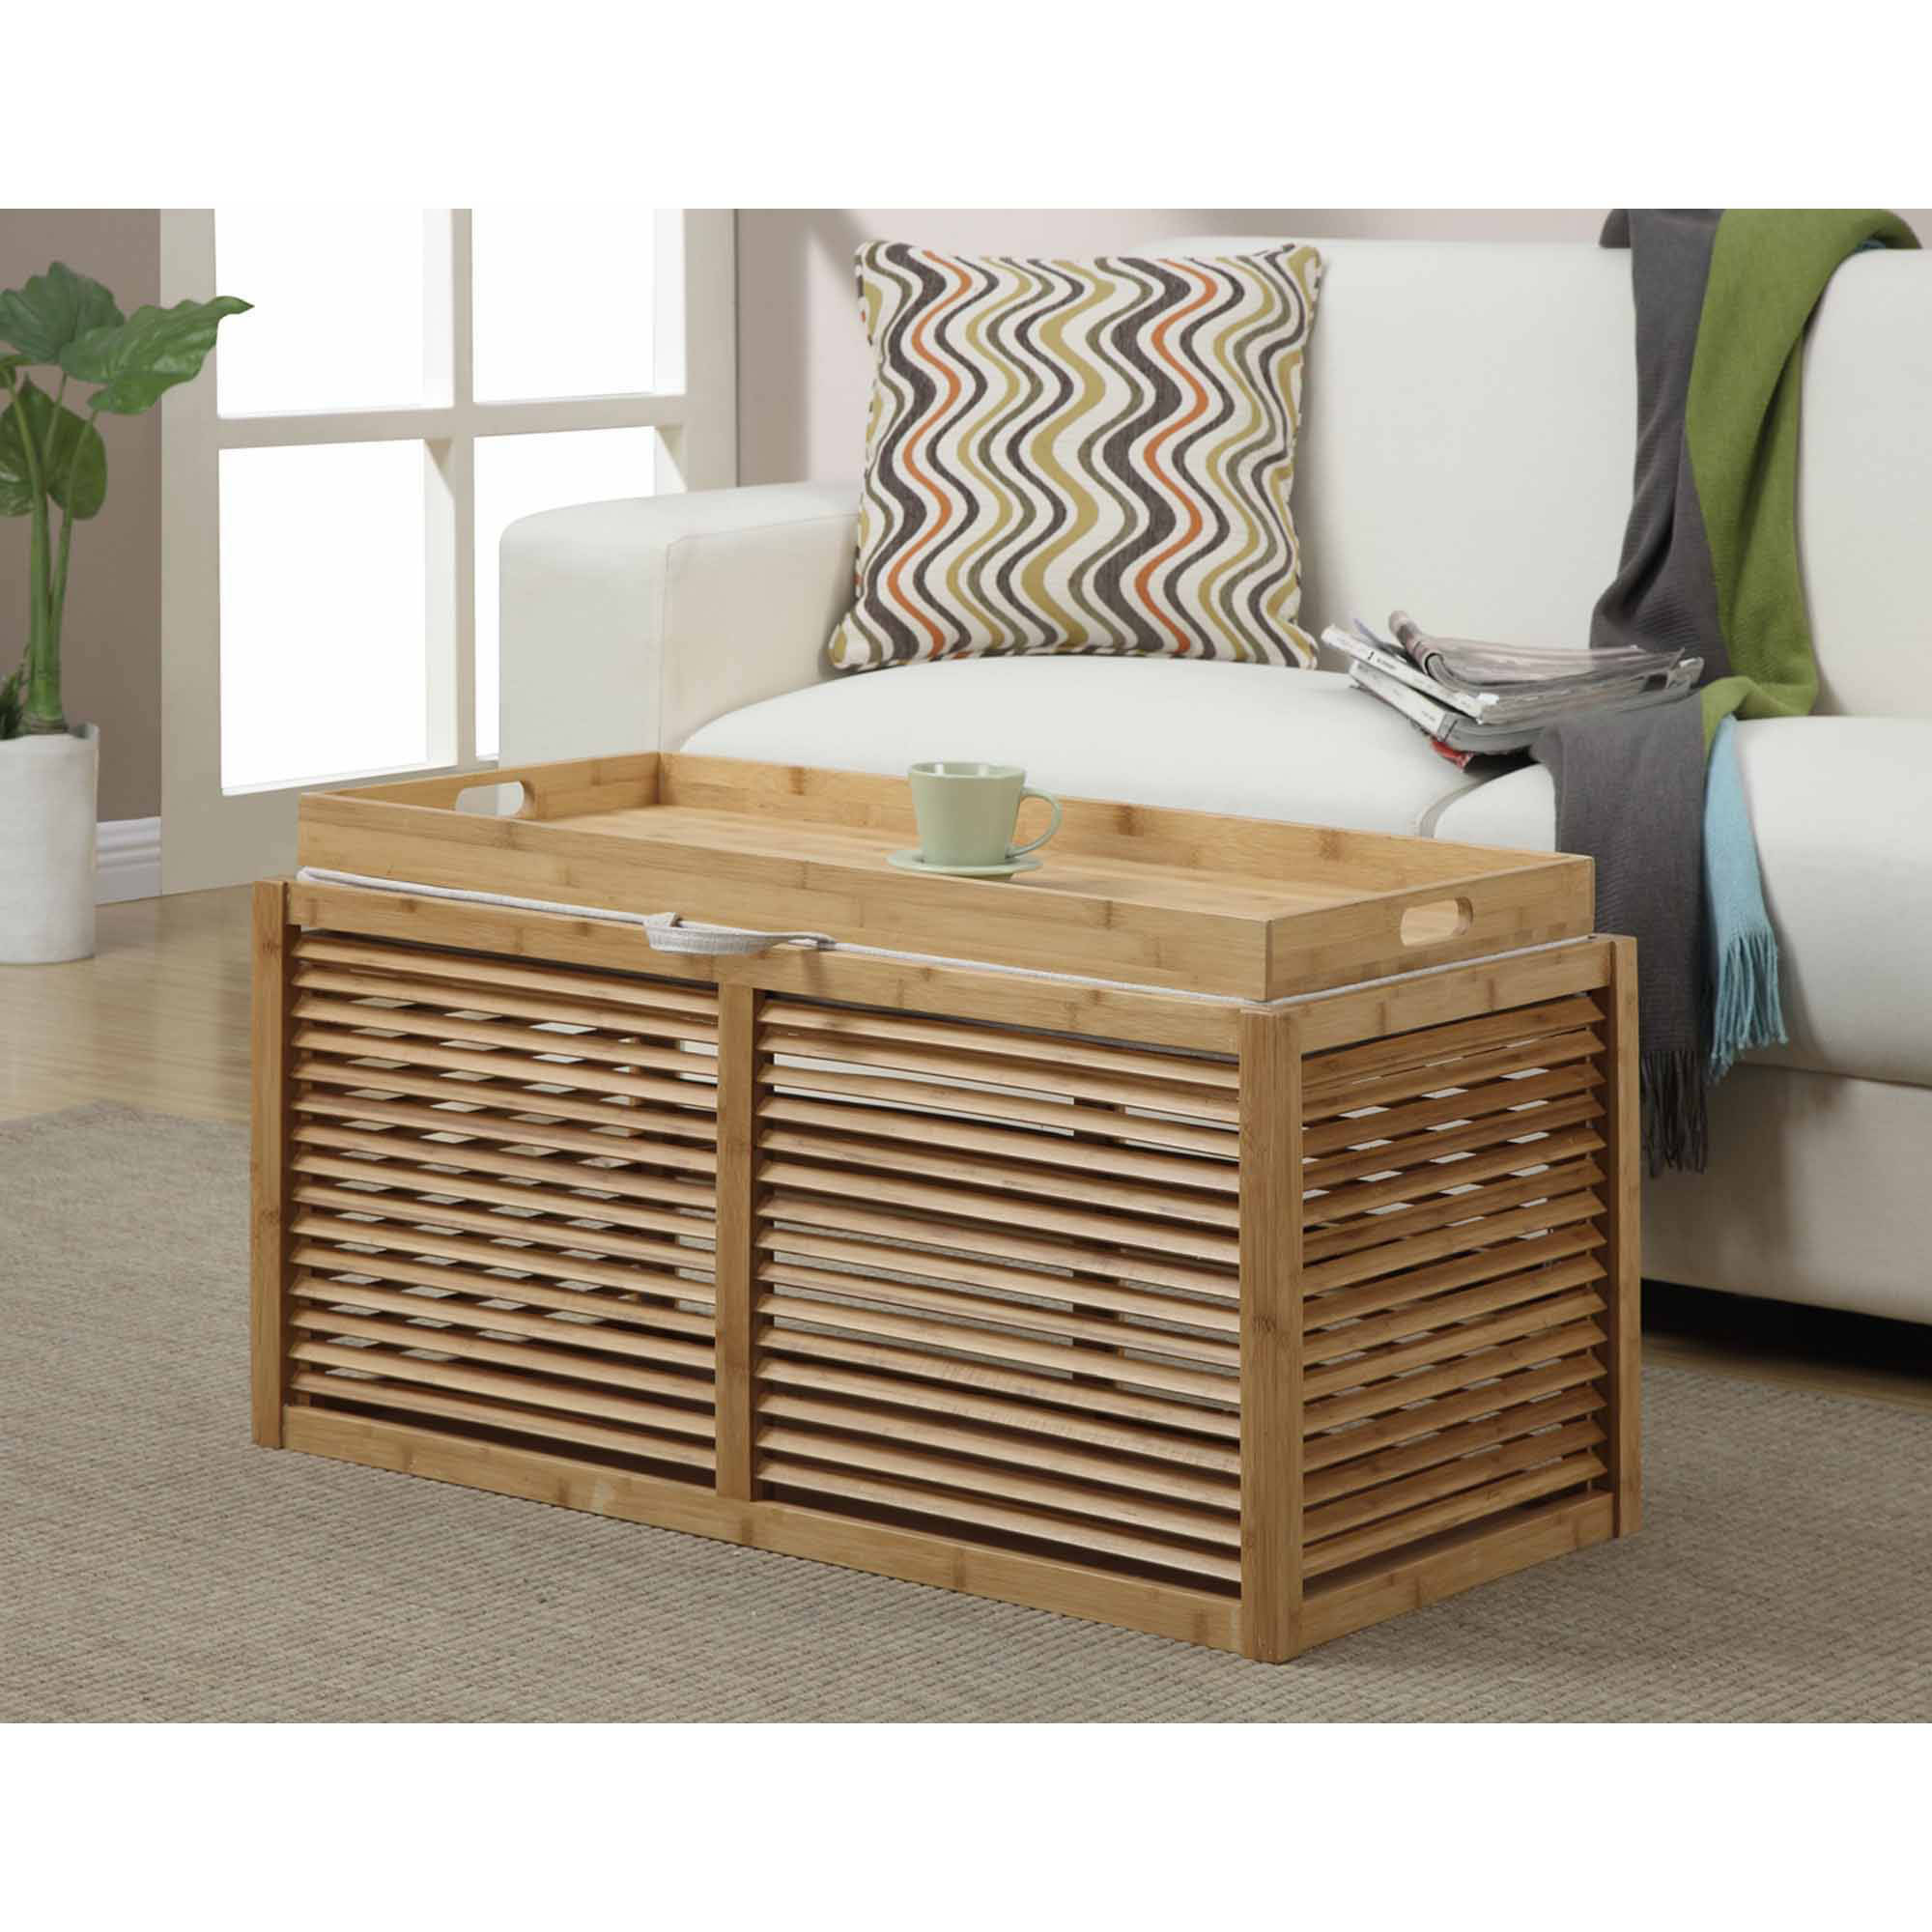 Convenience Concepts Designs4Comfort Double Bamboo Ottoman, Multiple Patterns